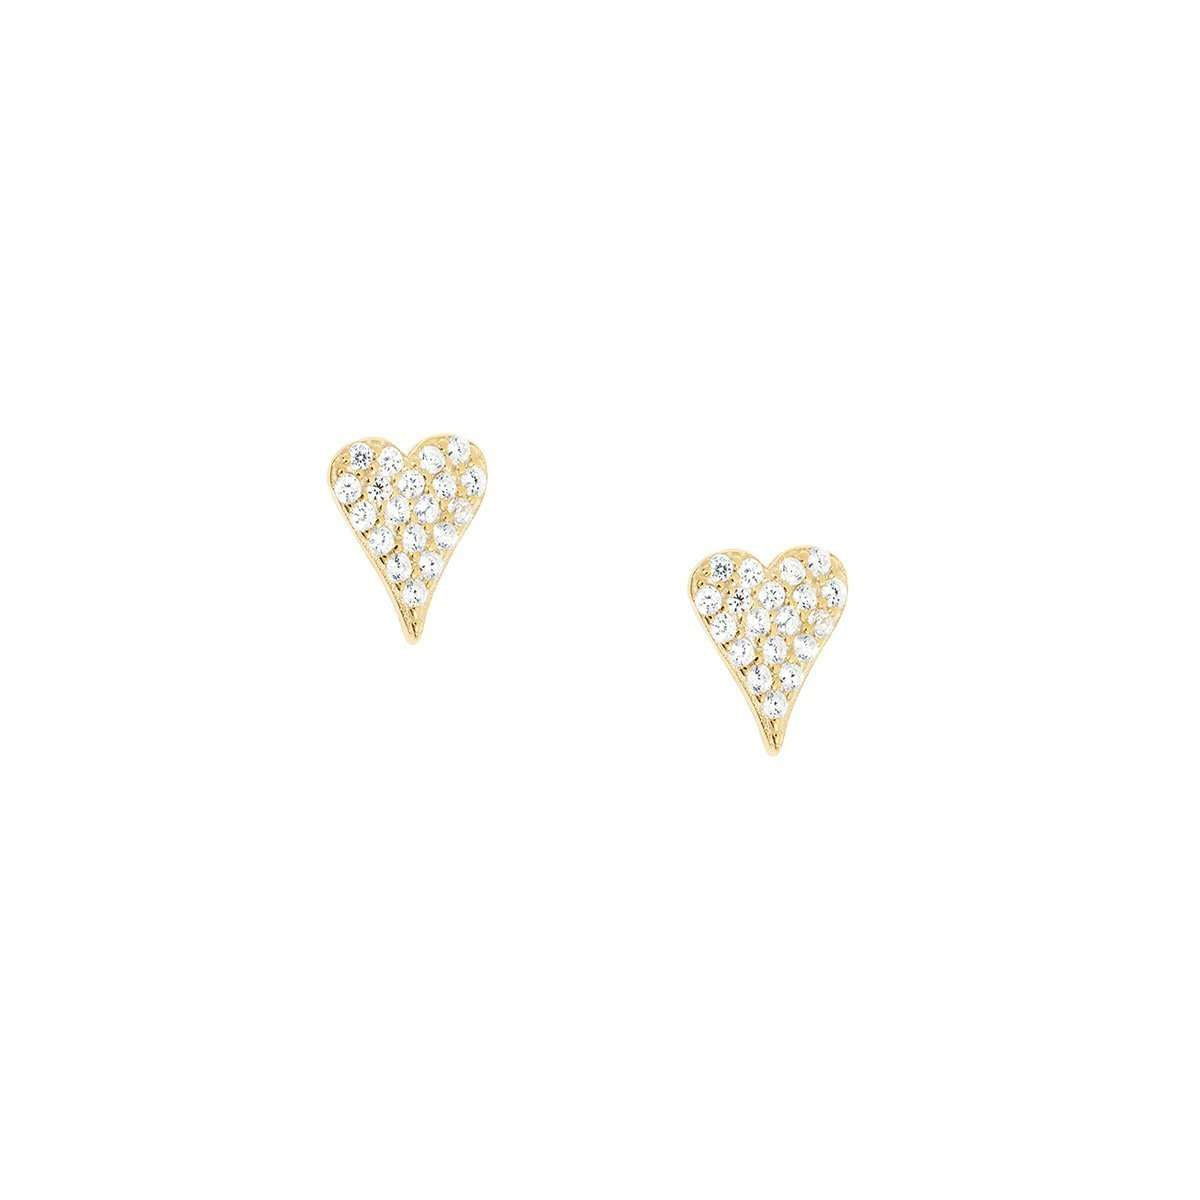 passion-earring-studearrings-jewelry